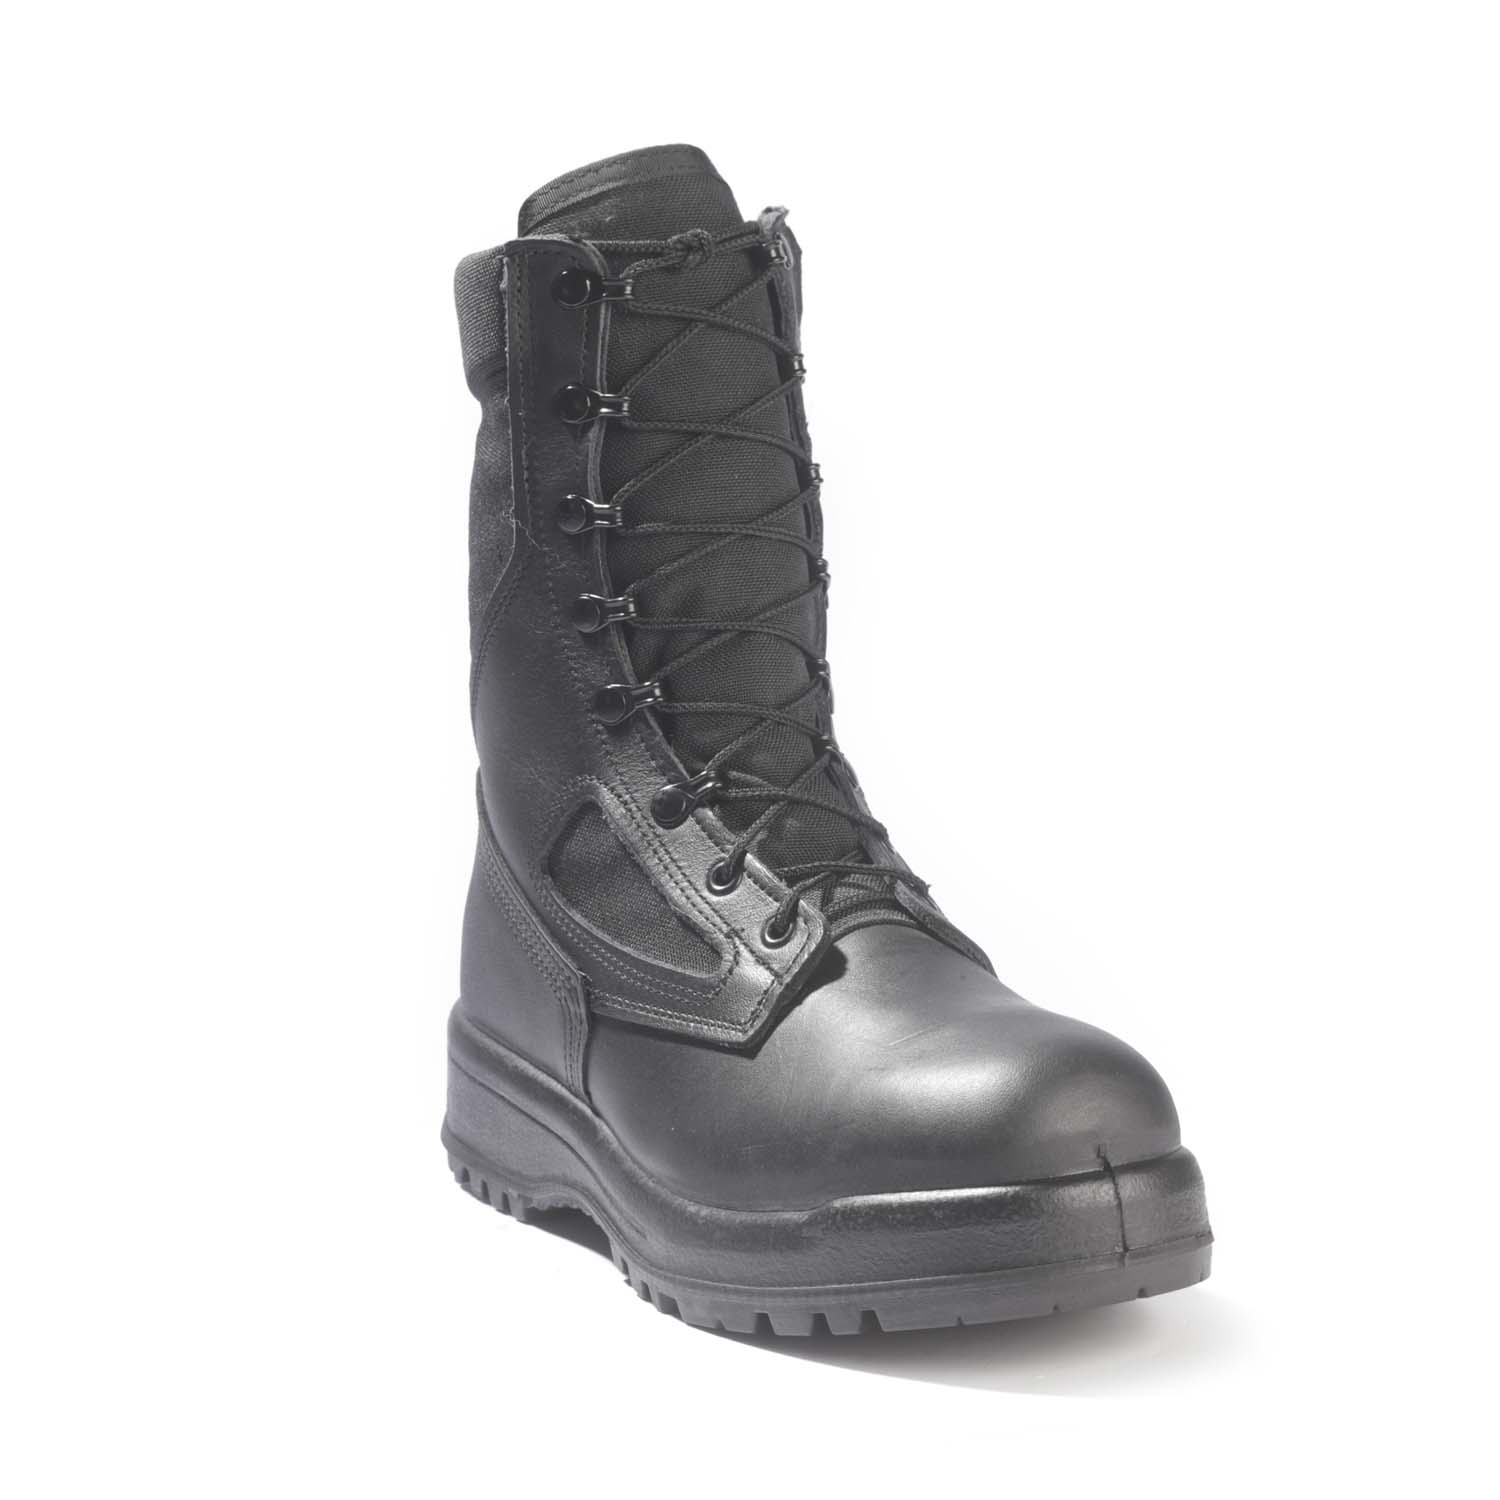 Belleville USA Approved VANGUARD Desert Combat Boot